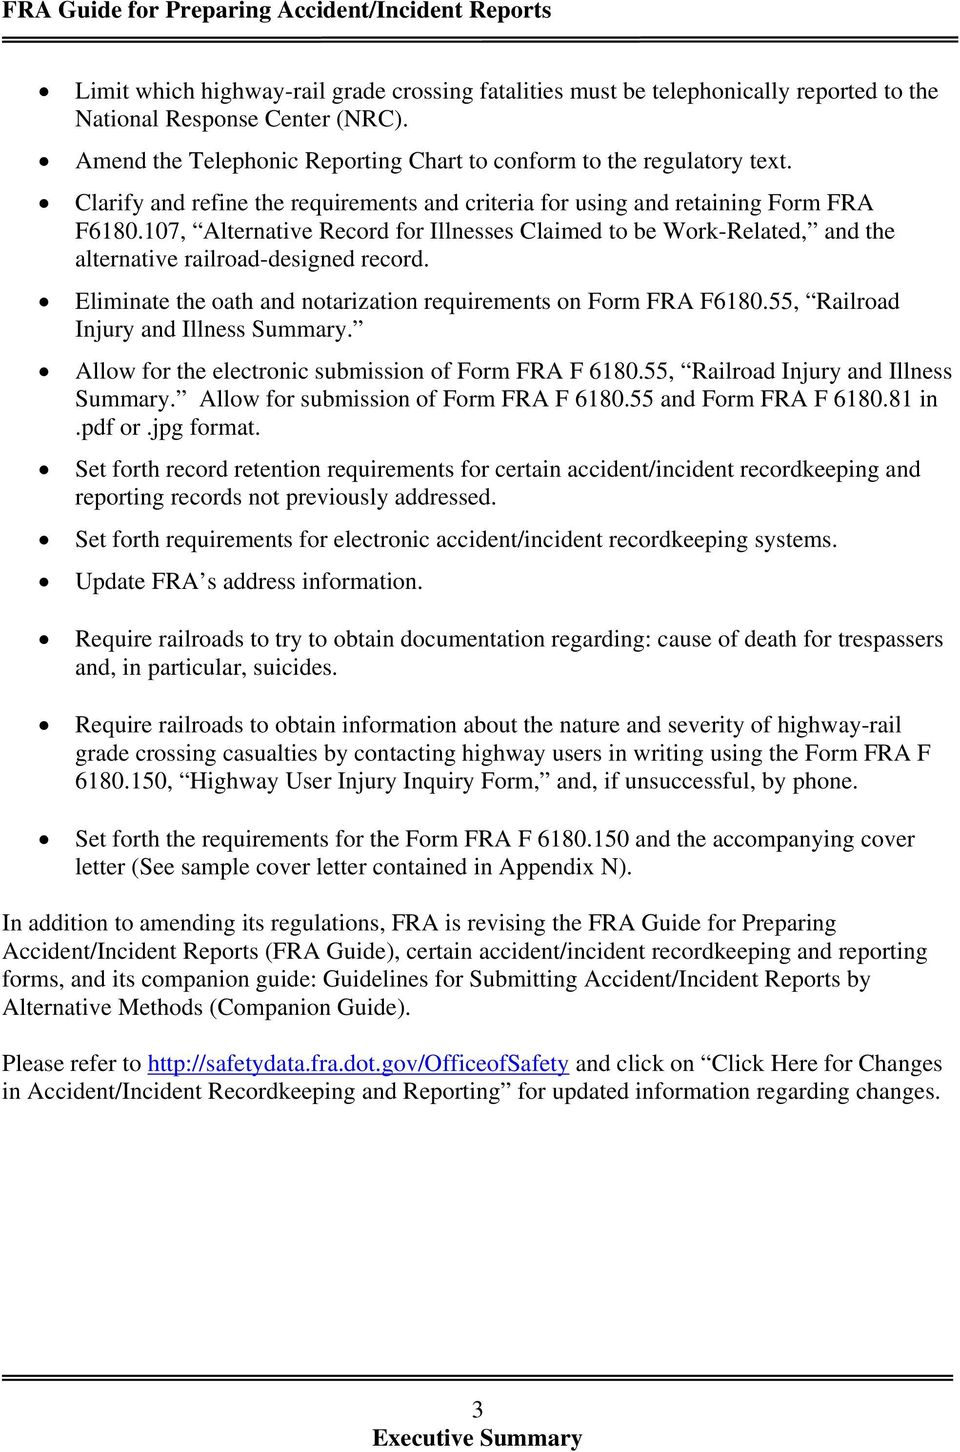 FRA Guide for Preparing Accident/Incident Reports - PDF